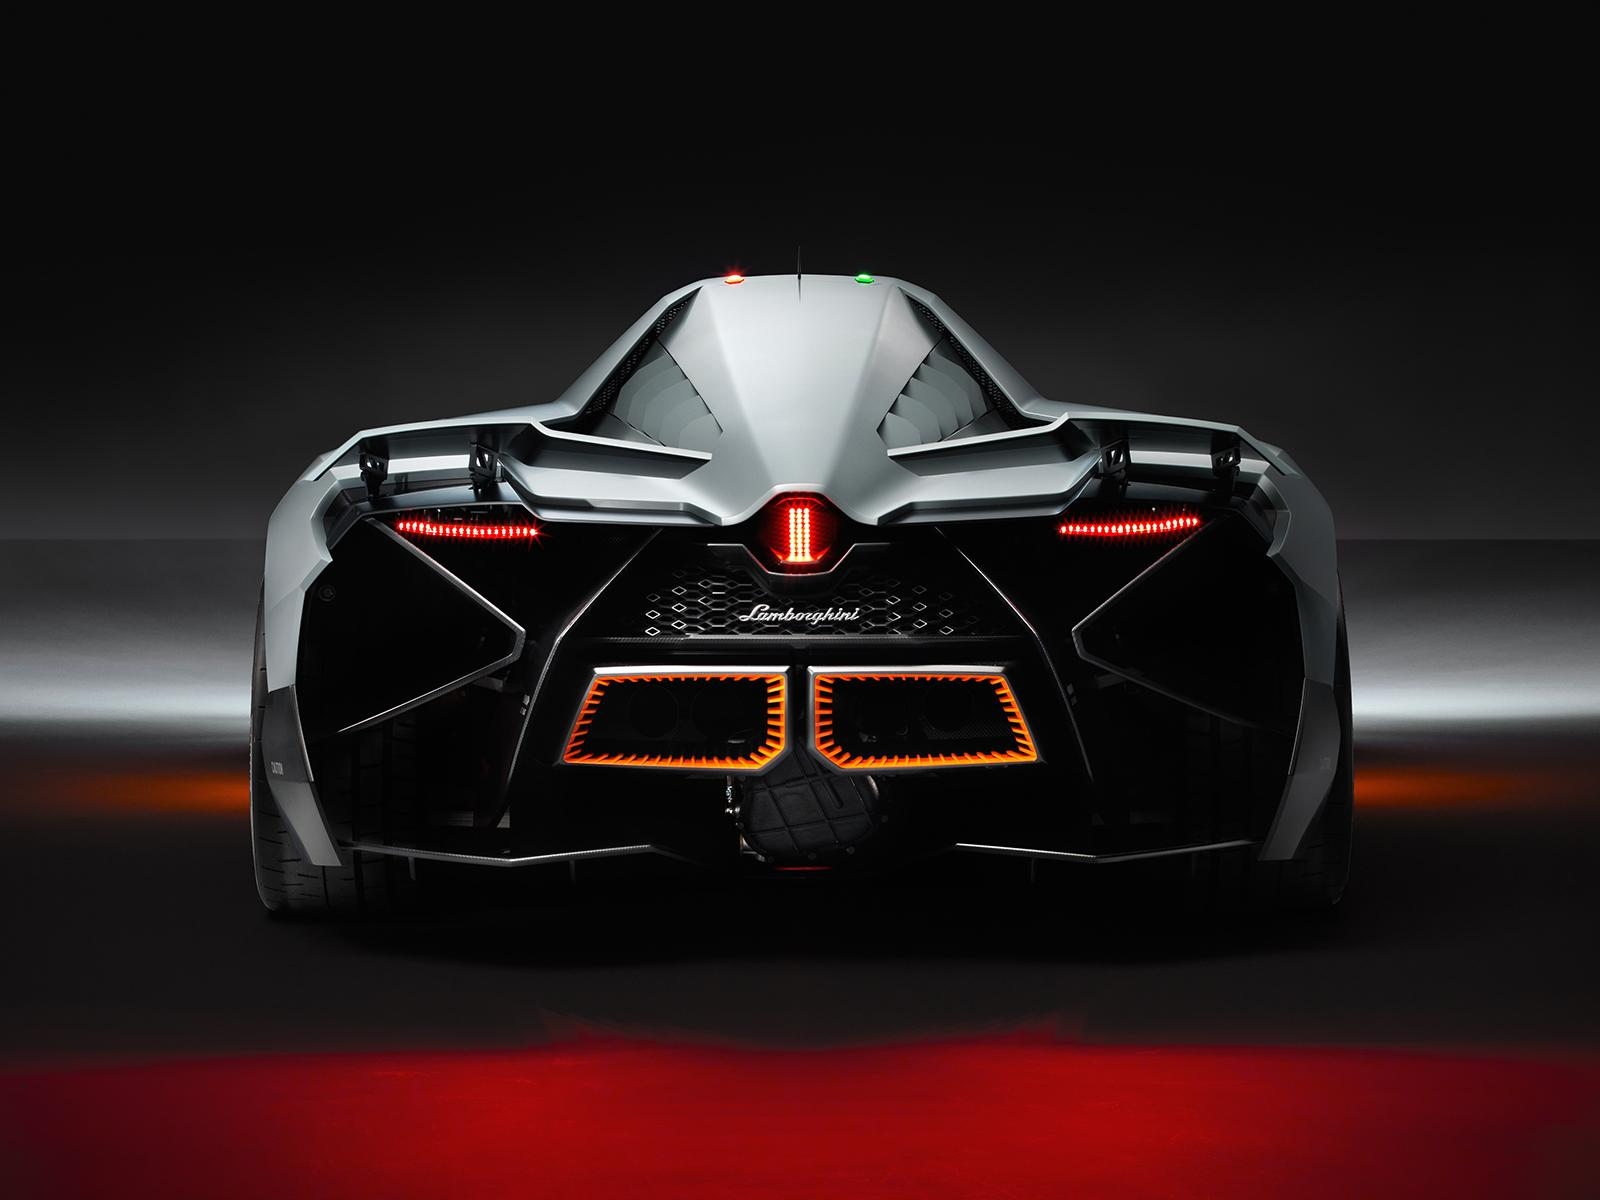 http://www.gmotors.co.uk/news/wp-content/uploads/2013/05/Lamborghini-Egoista-3.jpg